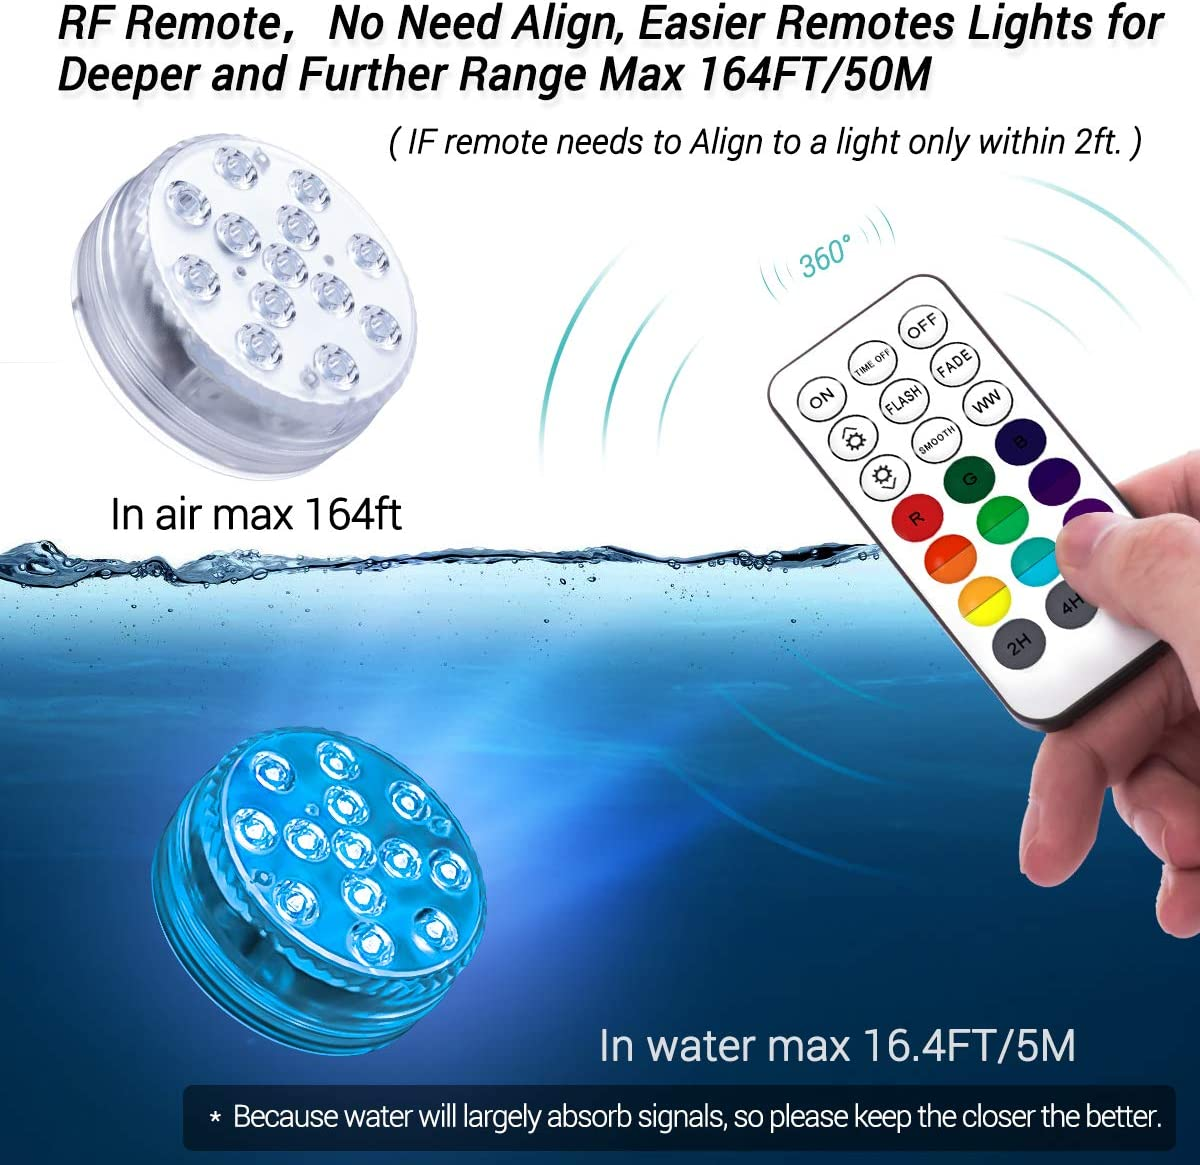 4 Pcs Waterproof Underwater Submersible Led Lights with 13 LEDs LOFTEK Pond Lights Hot Tub Lights Pool Lights for Fish Tank Decorations Outdoor Garden Swimming Pool and Bath Spa Lights